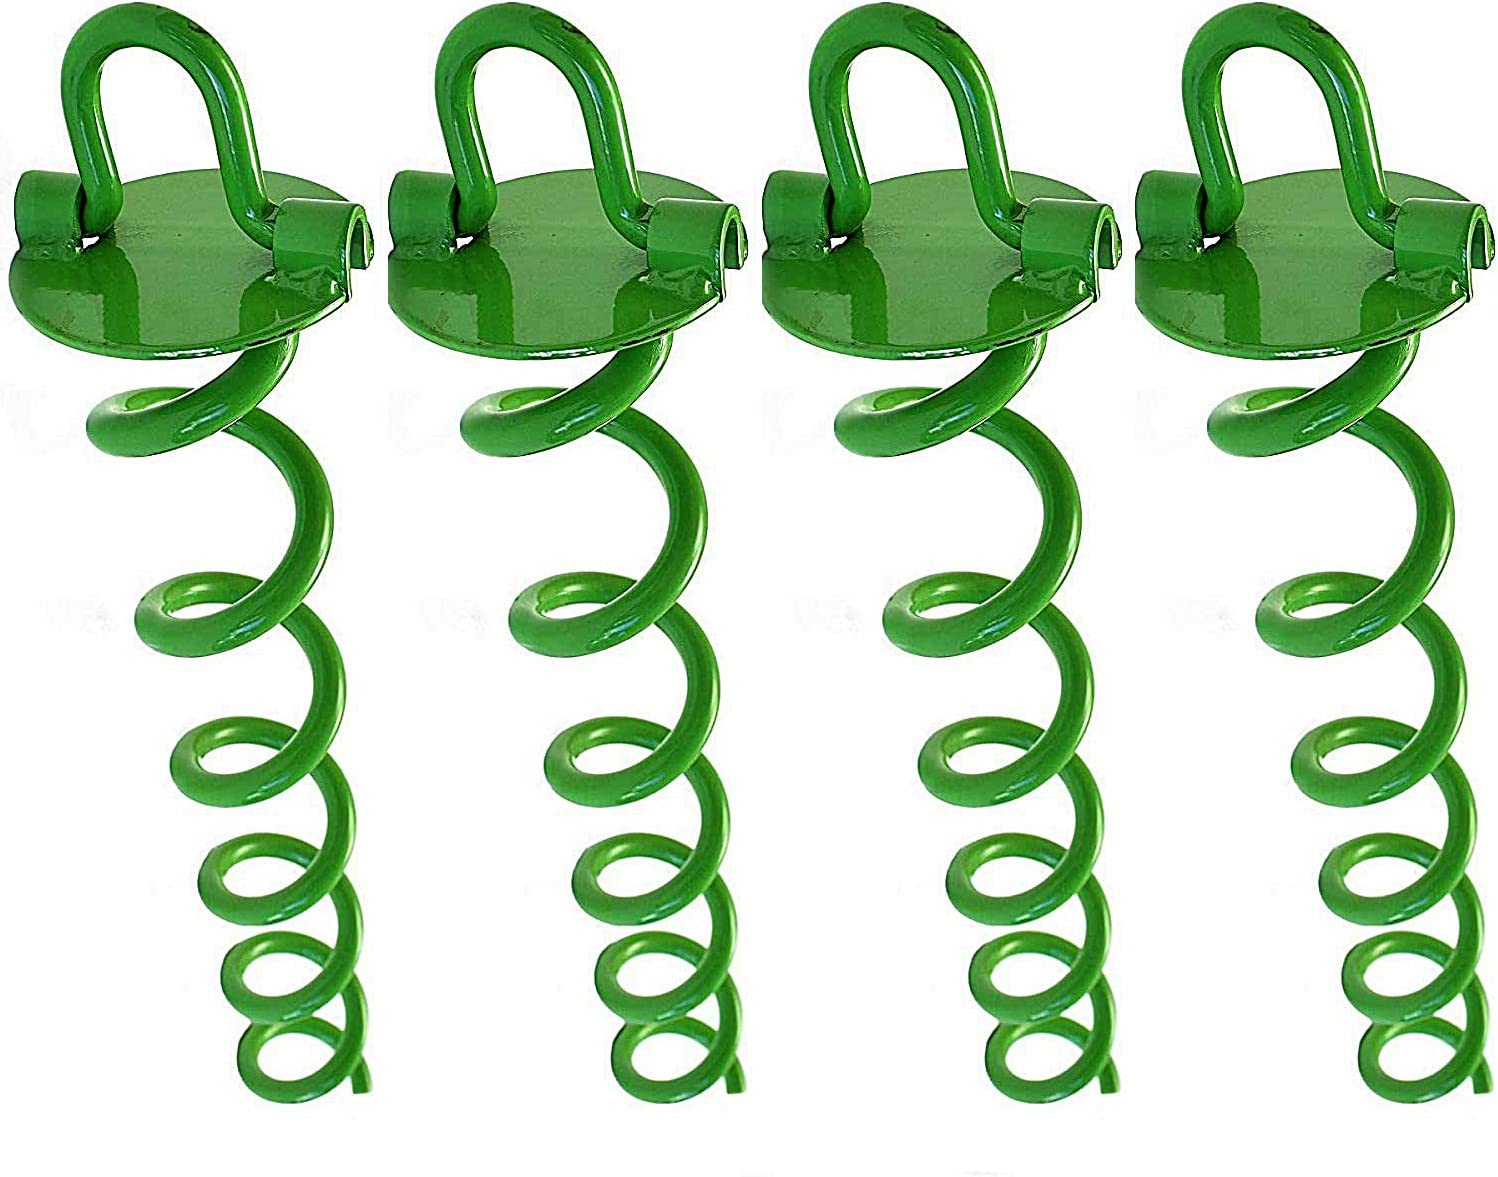 N1Fit Trampoline Anchors - Trampoline Stakes - 16 Inch Ground Anchor Ideal as Dog tie Out Stake Securing Animals, Tents, Canopies, Sheds, Car Ports, Swing Sets